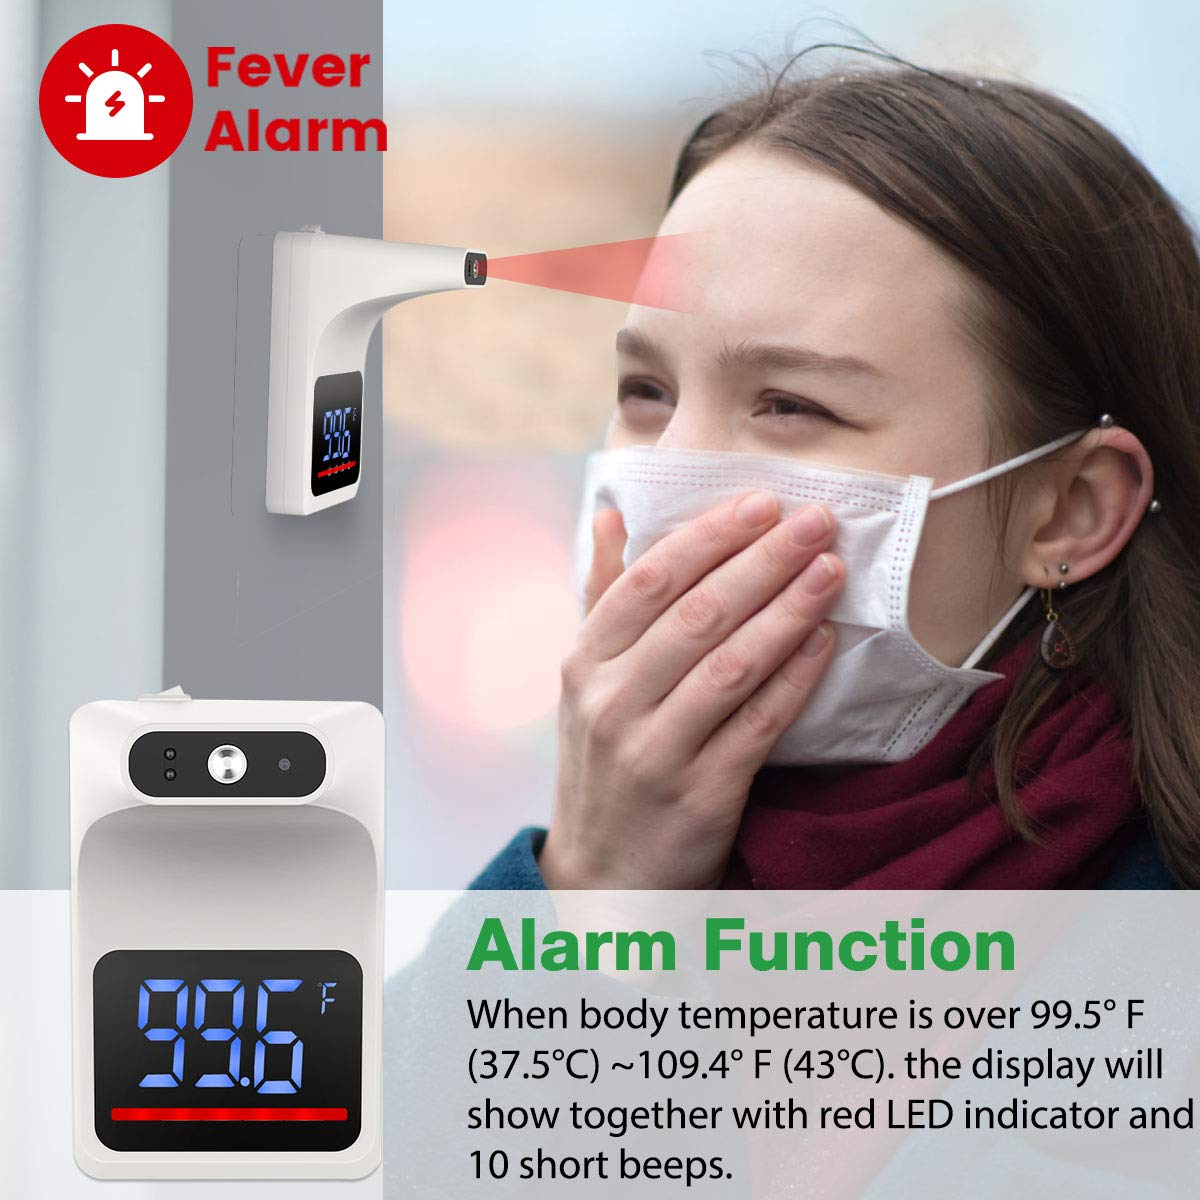 Wall-Mounted Digital Thermometer with Fever Alarm LCD Display for Offices Schools WMWHALE Non-Contact Infrared Forehead Thermometer Shops with Tripod Factories